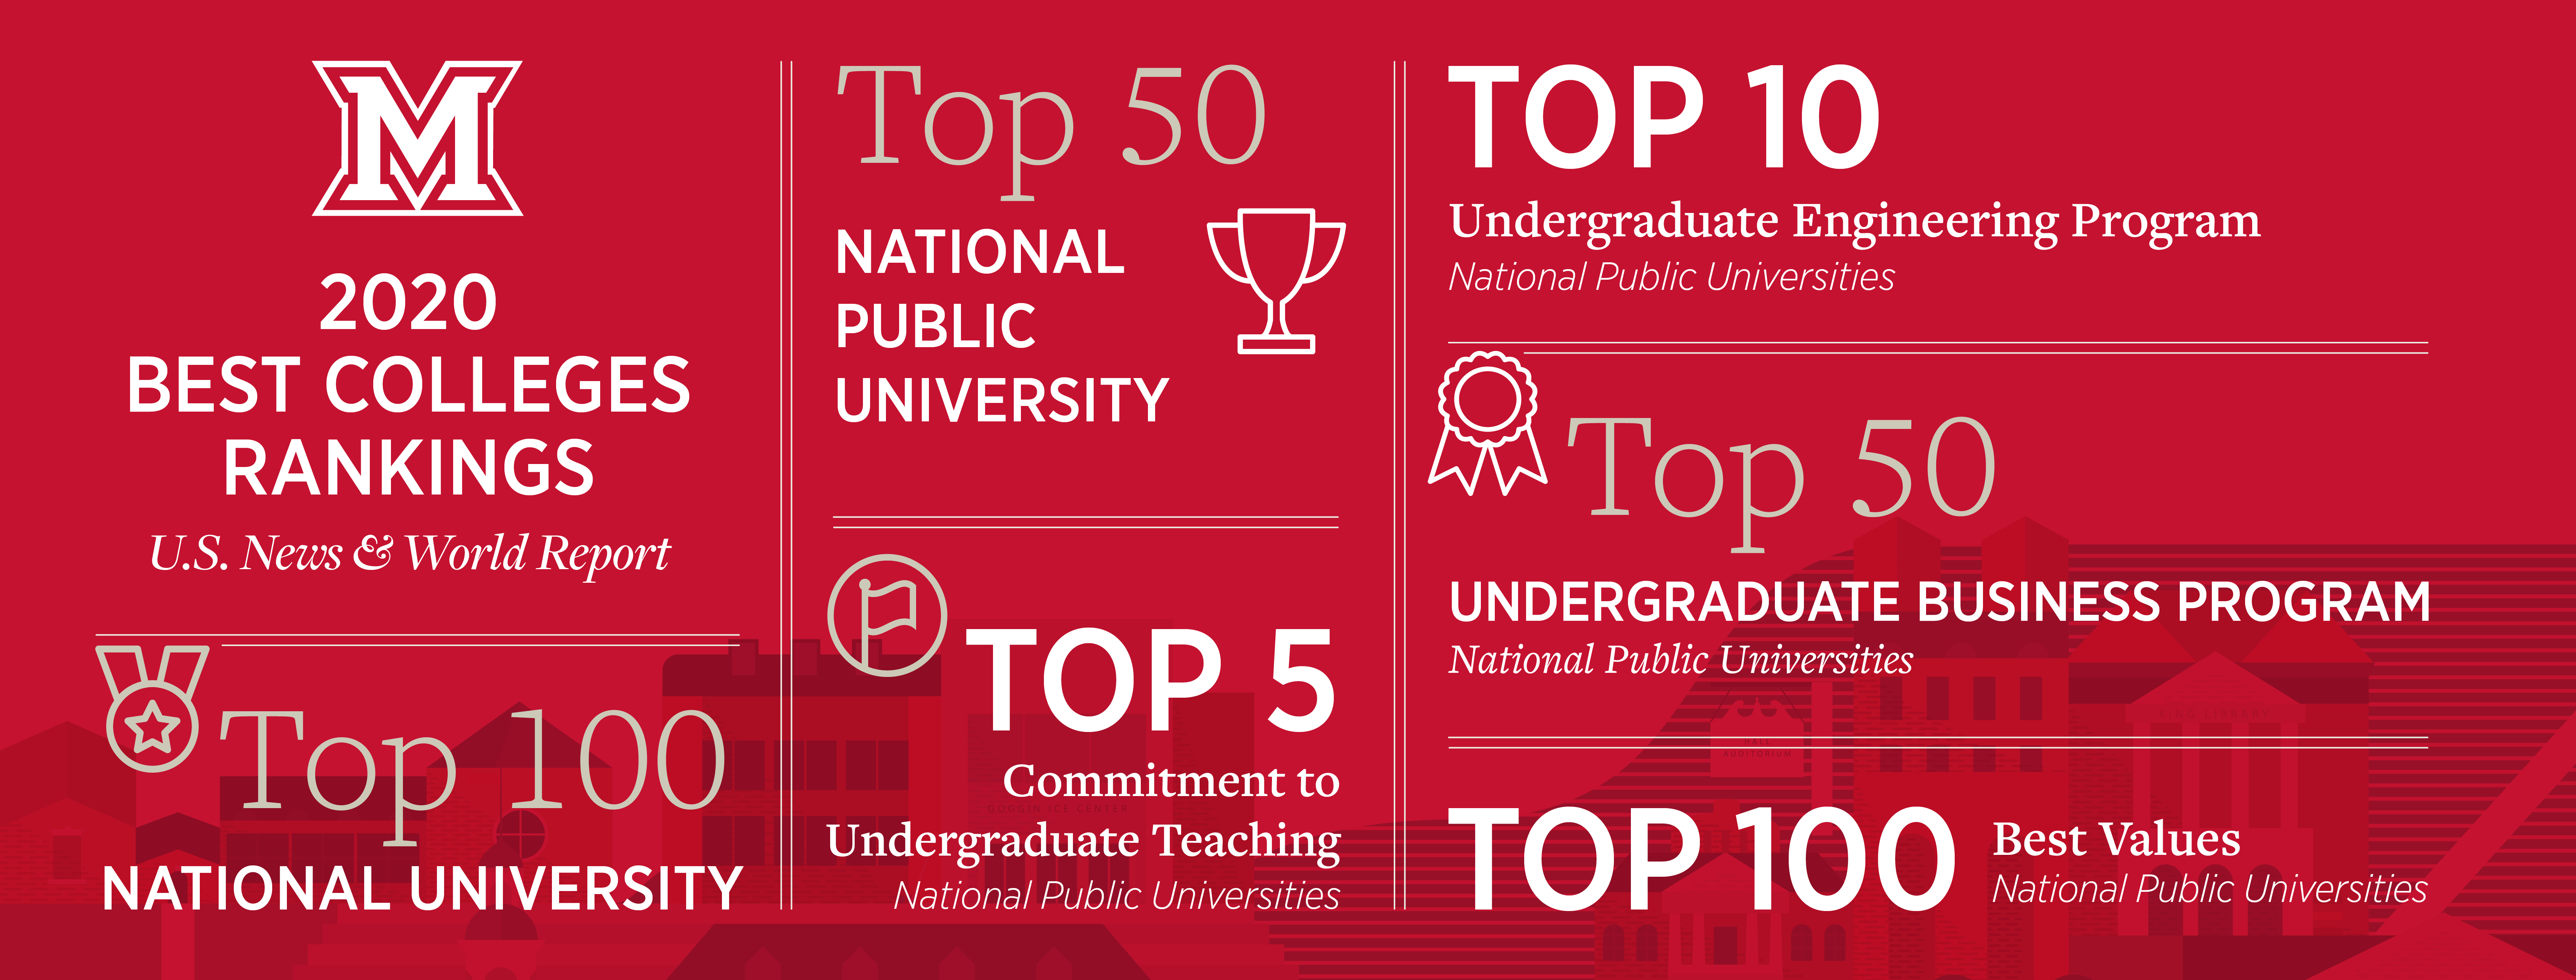 2020 Best Colleges Rankings by U.S. News and World Report. Top 100 national university. Top 50 national public university. Top 5 commitment to undergraduate teaching. Top 10 undergraduate engineering program. Top 50 undergraduate business program. Top 100 best values.